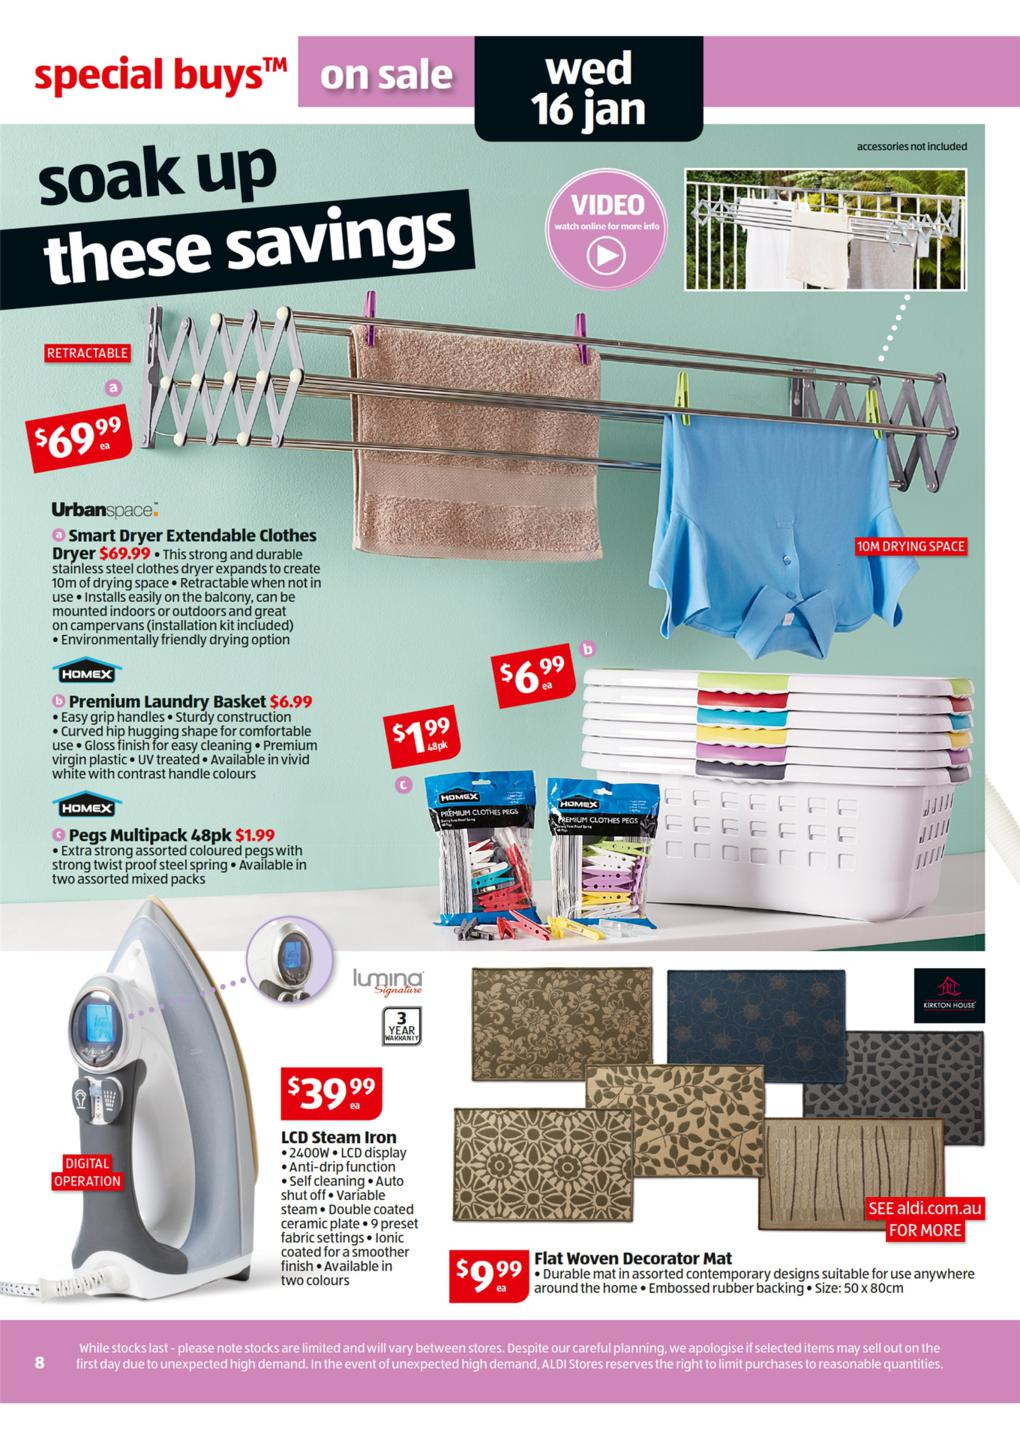 ALDI Catalogue - Special Buys Wk 3 January homex premium laundry basket, urban space smart dryer extendable clothes dryer